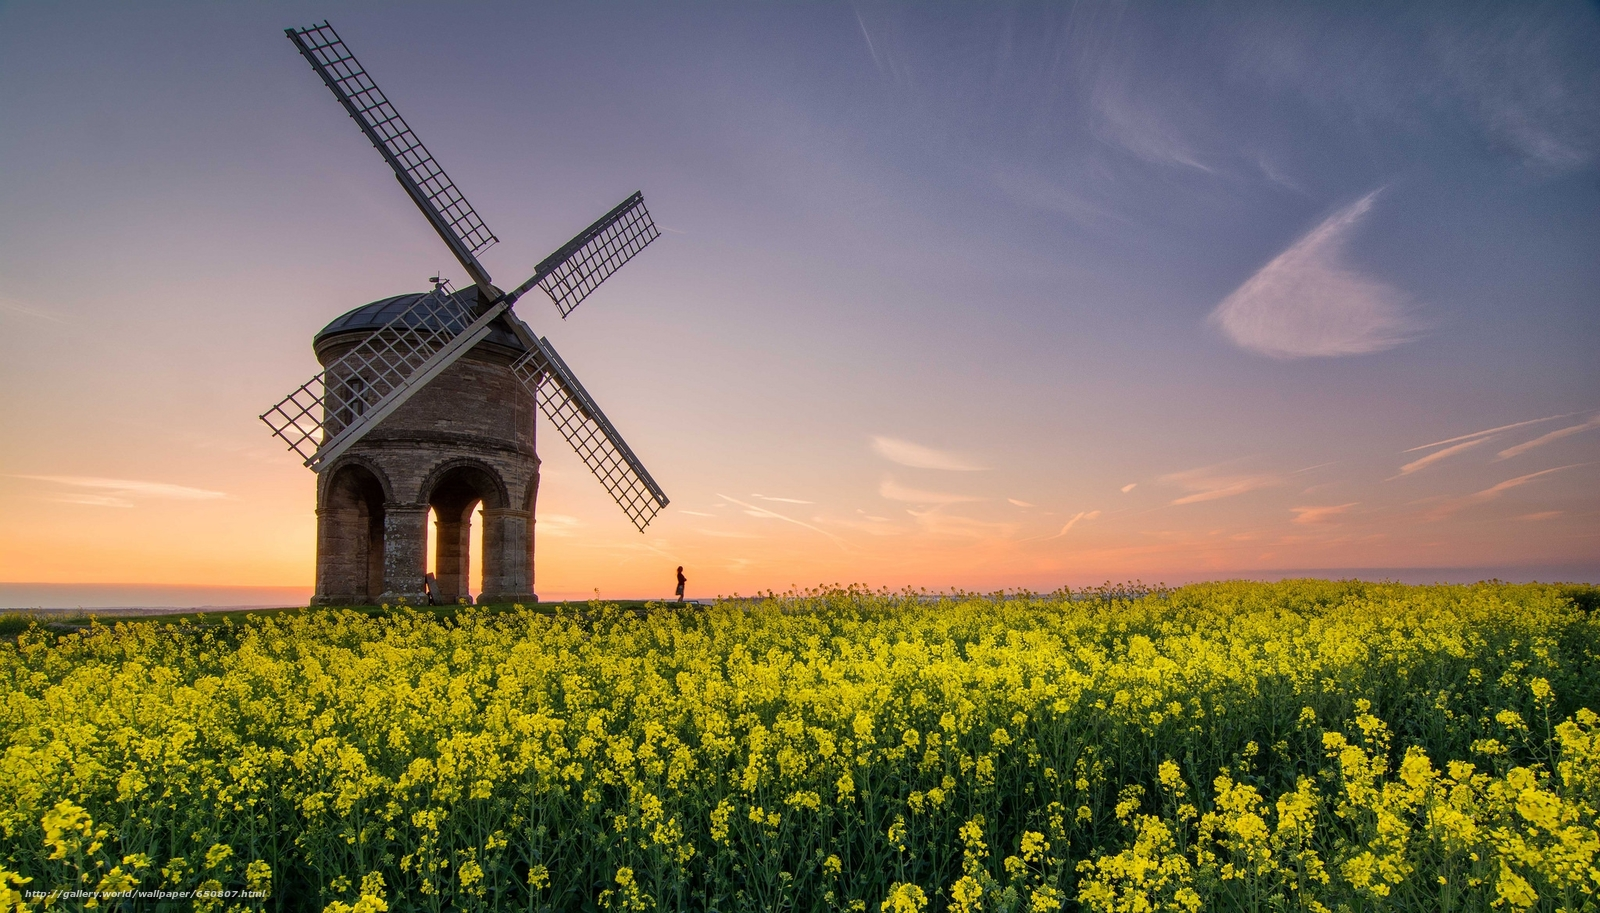 Warwickshire United Kingdom  city pictures gallery : Download wallpaper Chesterton Windmill, Warwickshire, United Kingdom ...